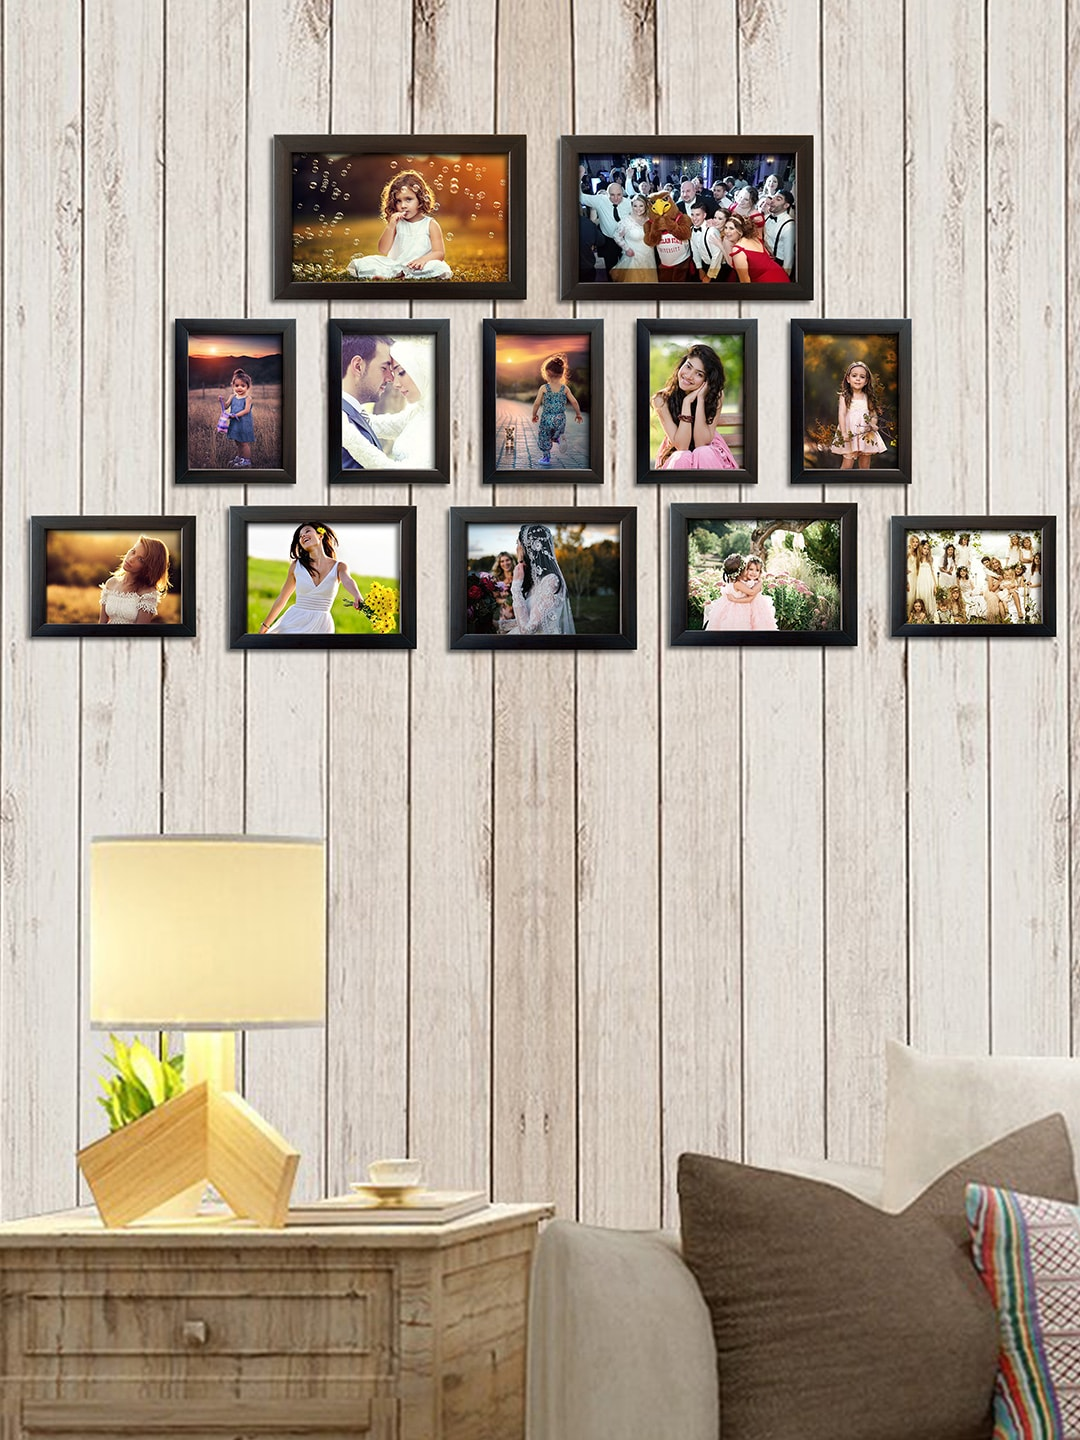 b4046cb09e7c Photo Frames - Buy Photo Frame Online in India at Best Price